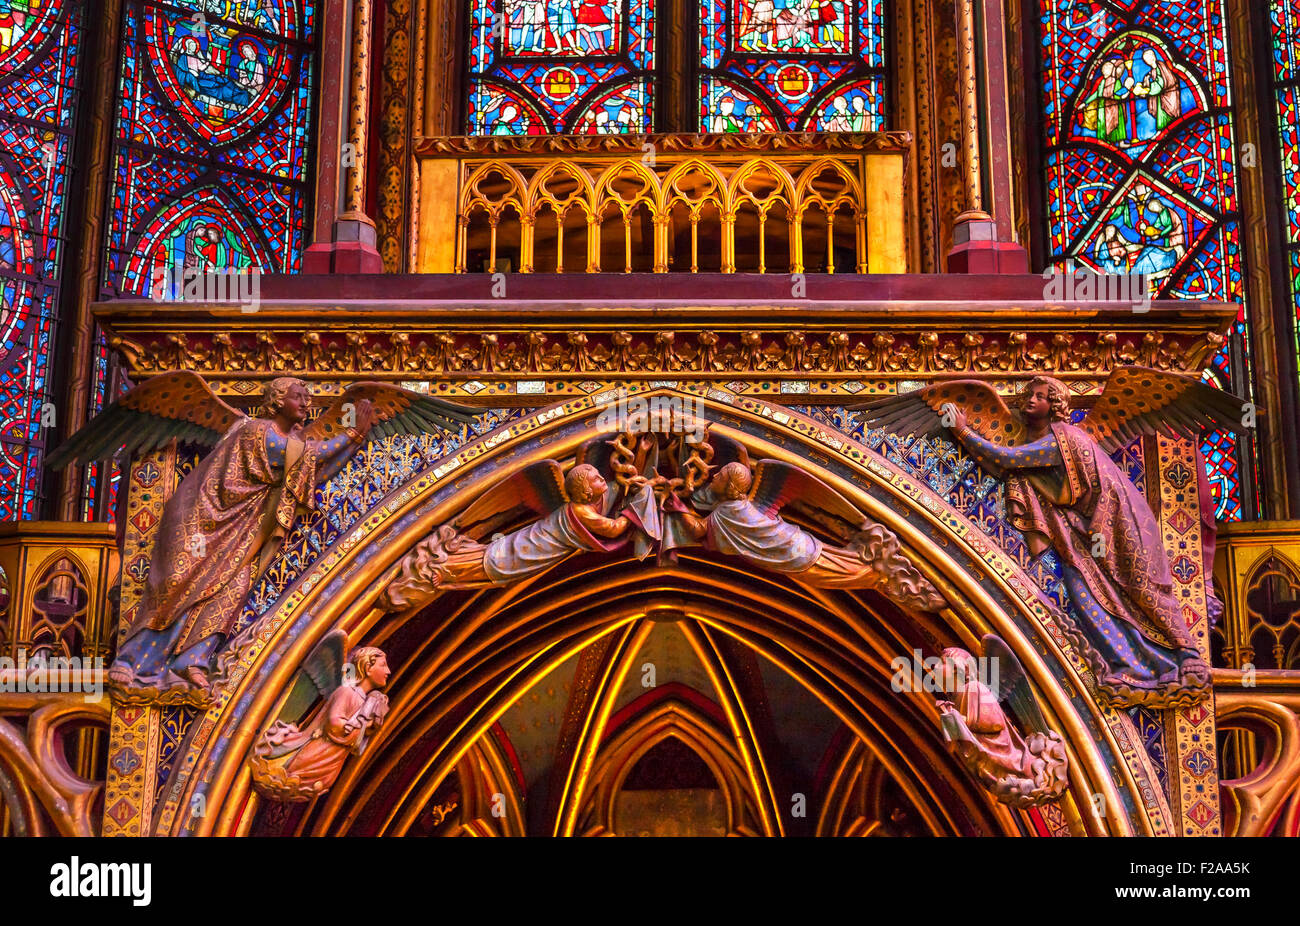 Stained Glass Angels Wood Carvings Cathedral Saint Chapelle Paris France.  Saint King Louis 9th created Sainte Chapelle - Stock Image